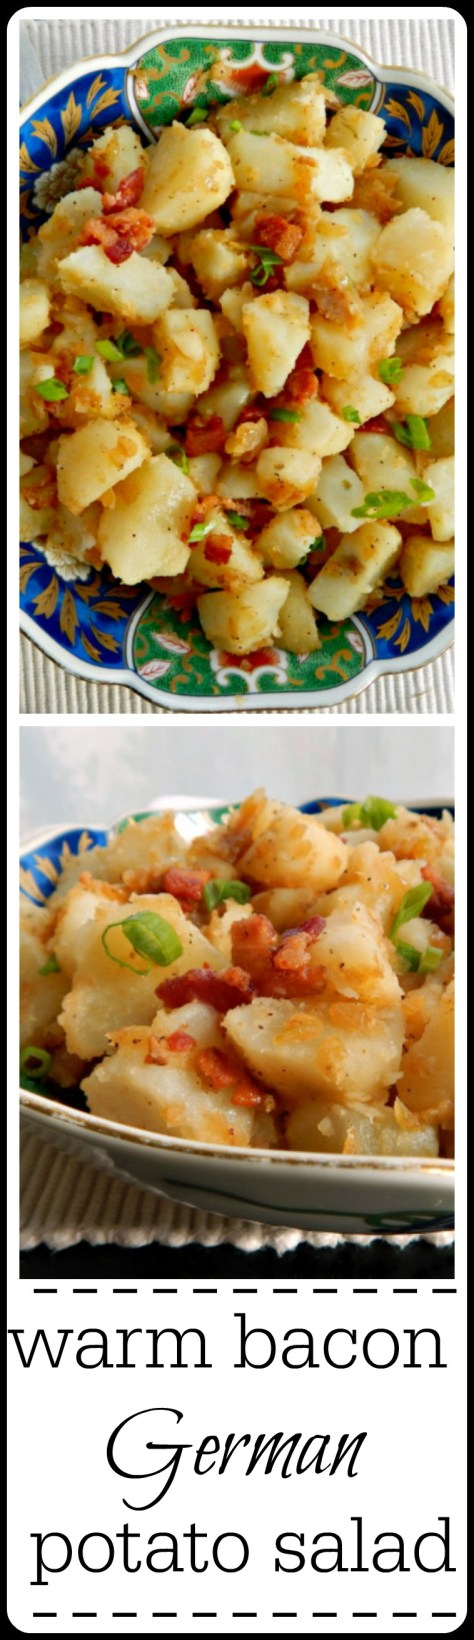 German Potato Salad: Done in the style of Southern Germany with Bacon & Vinegar. This is based off an old family recipe handed down from Grandma!